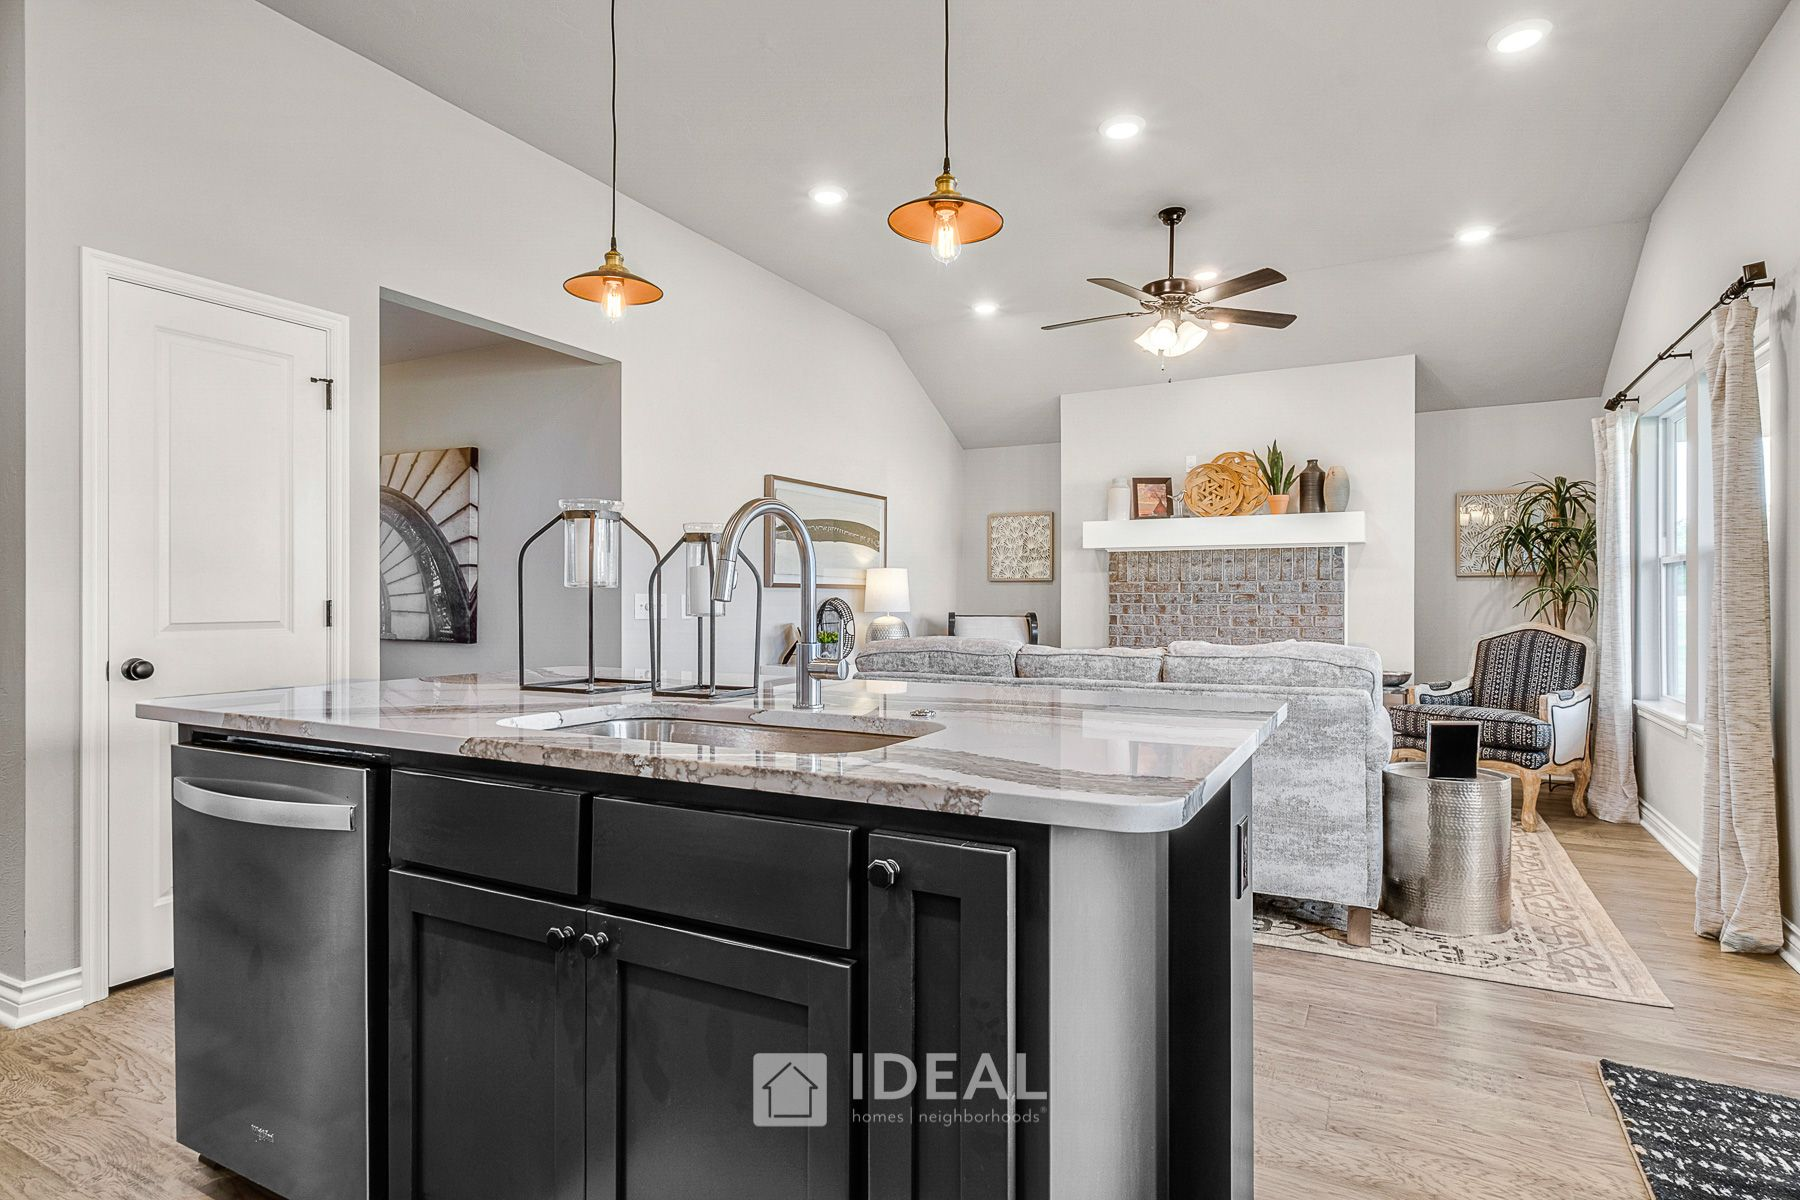 Kitchen featured in the Dawson By Ideal Homes in Oklahoma City, OK